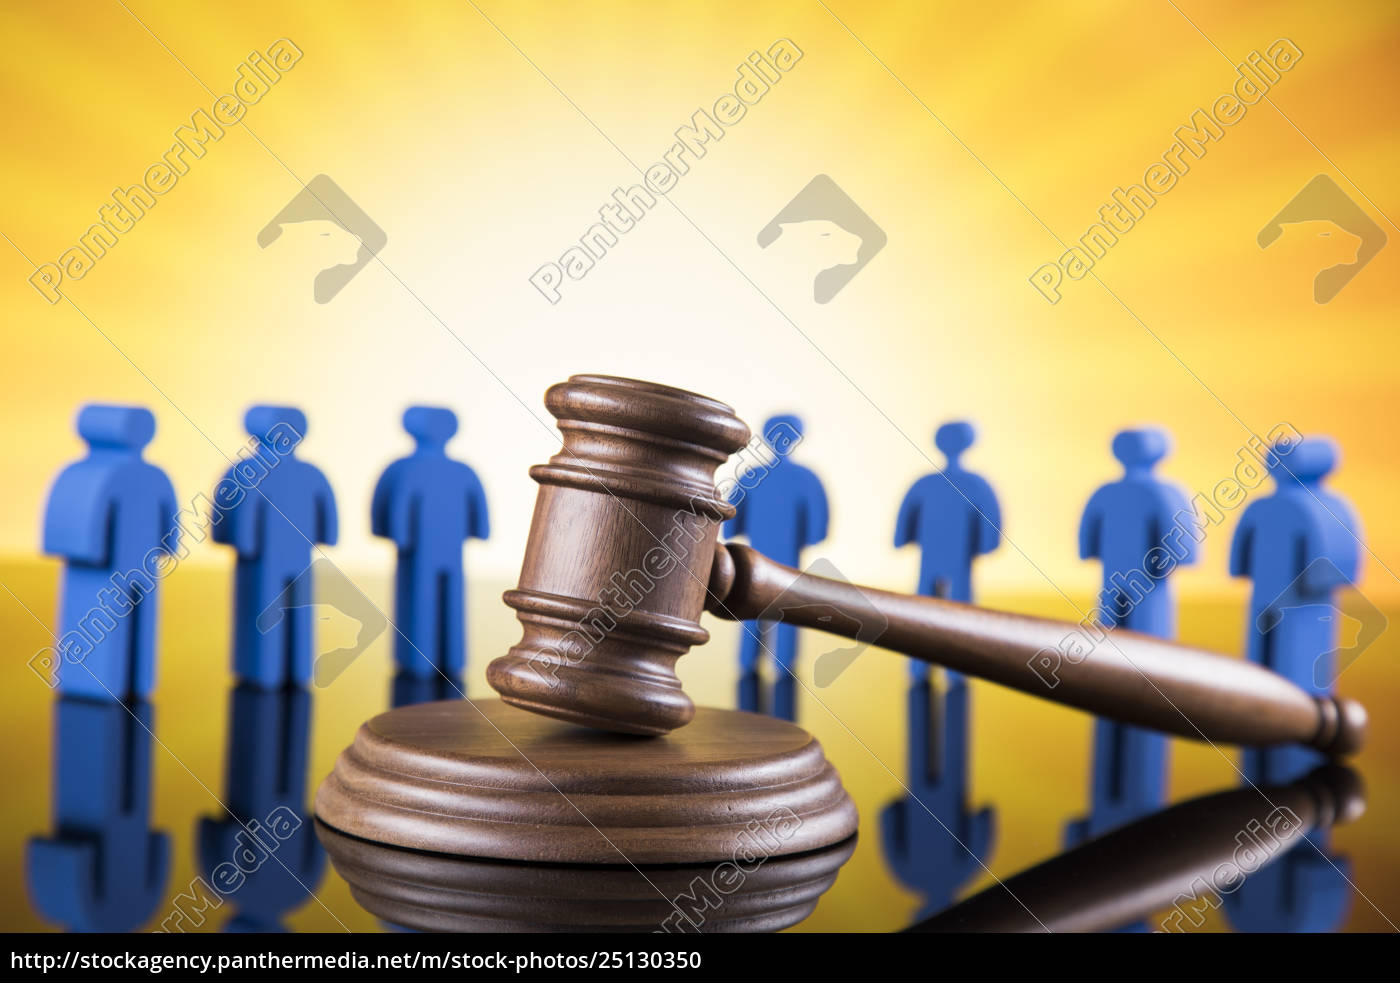 people, , , gavel, , mallet, of, justice - 25130350